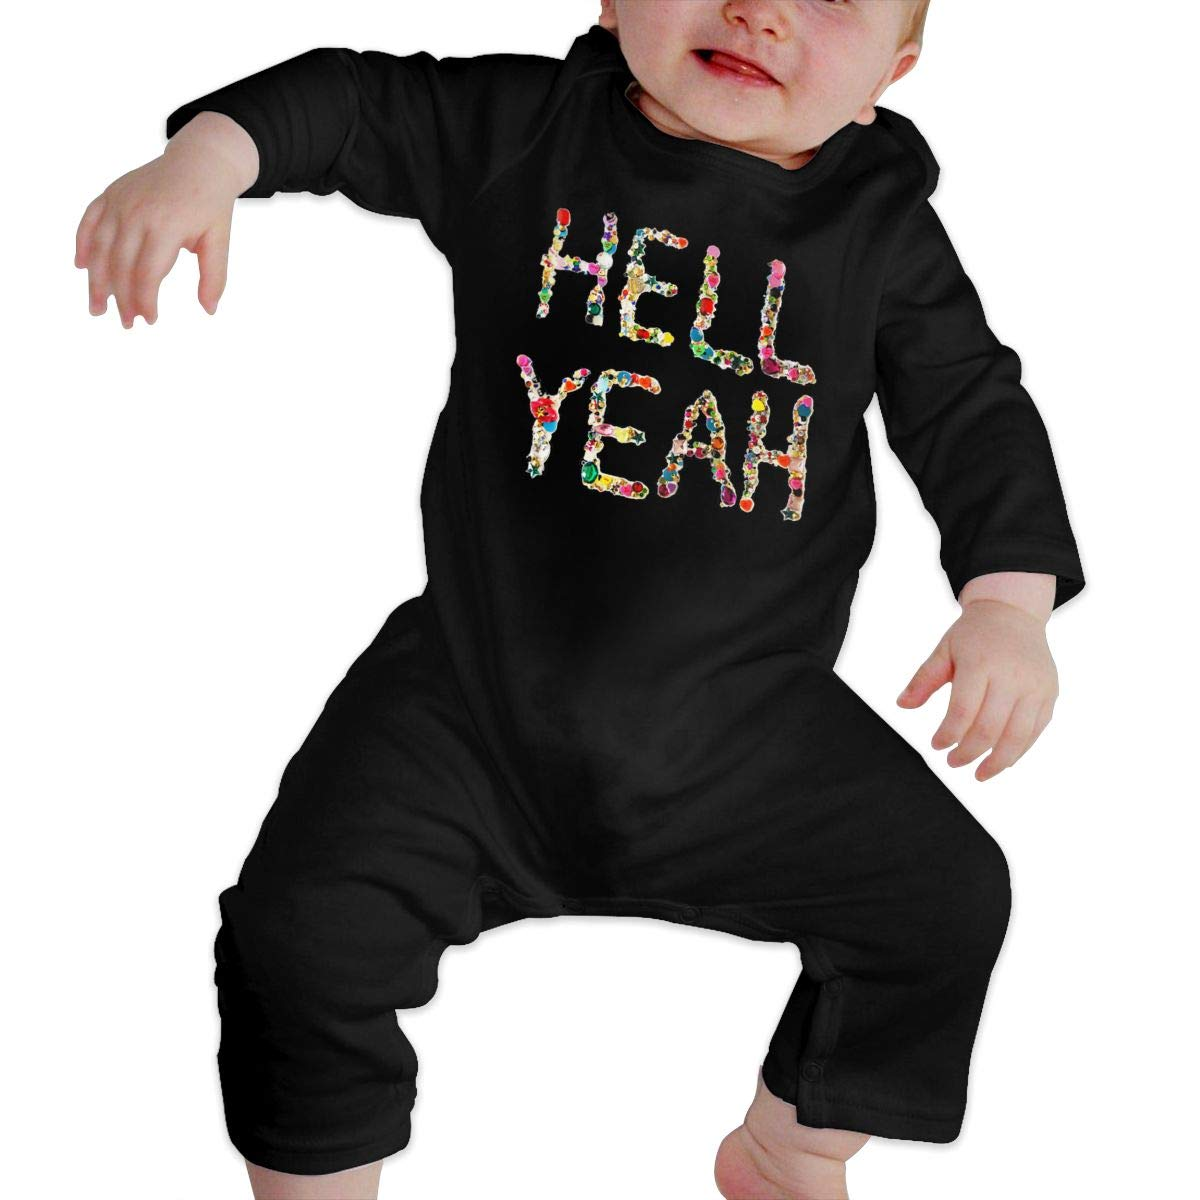 Fasenix Hell Yeah Newborn Baby Boy Girl Romper Jumpsuit Long Sleeve Bodysuit Overalls Outfits Clothes